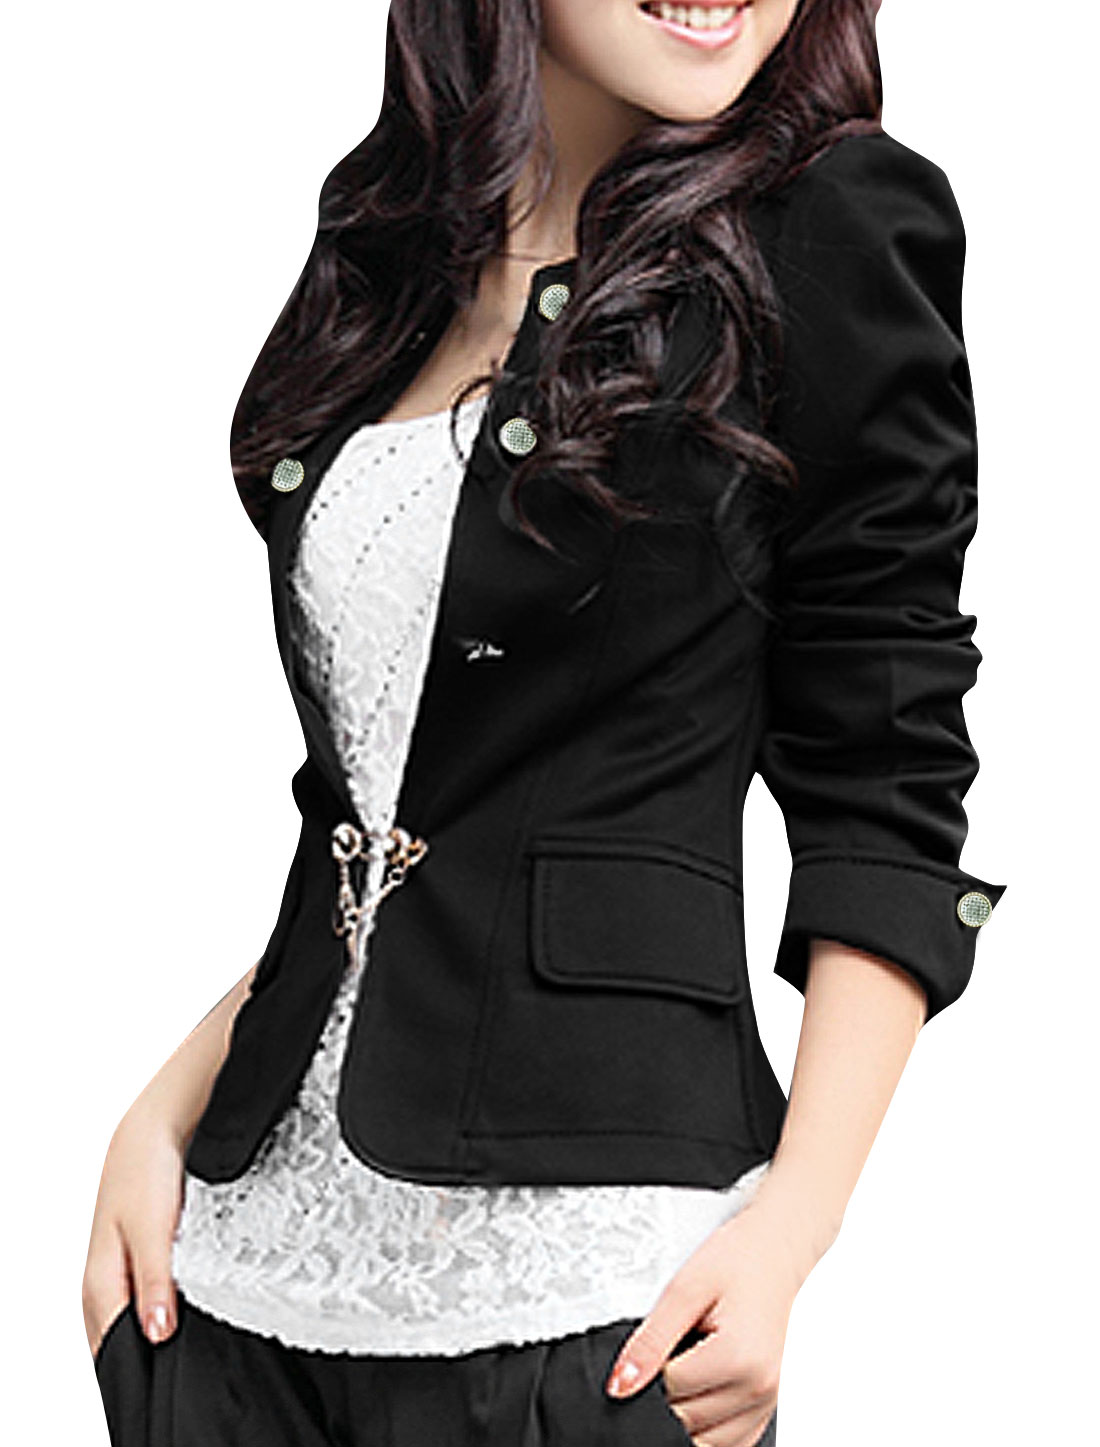 Woman Puff Sleeve Back Bowknot Ruffled Peplum Blazer Coat Black XS